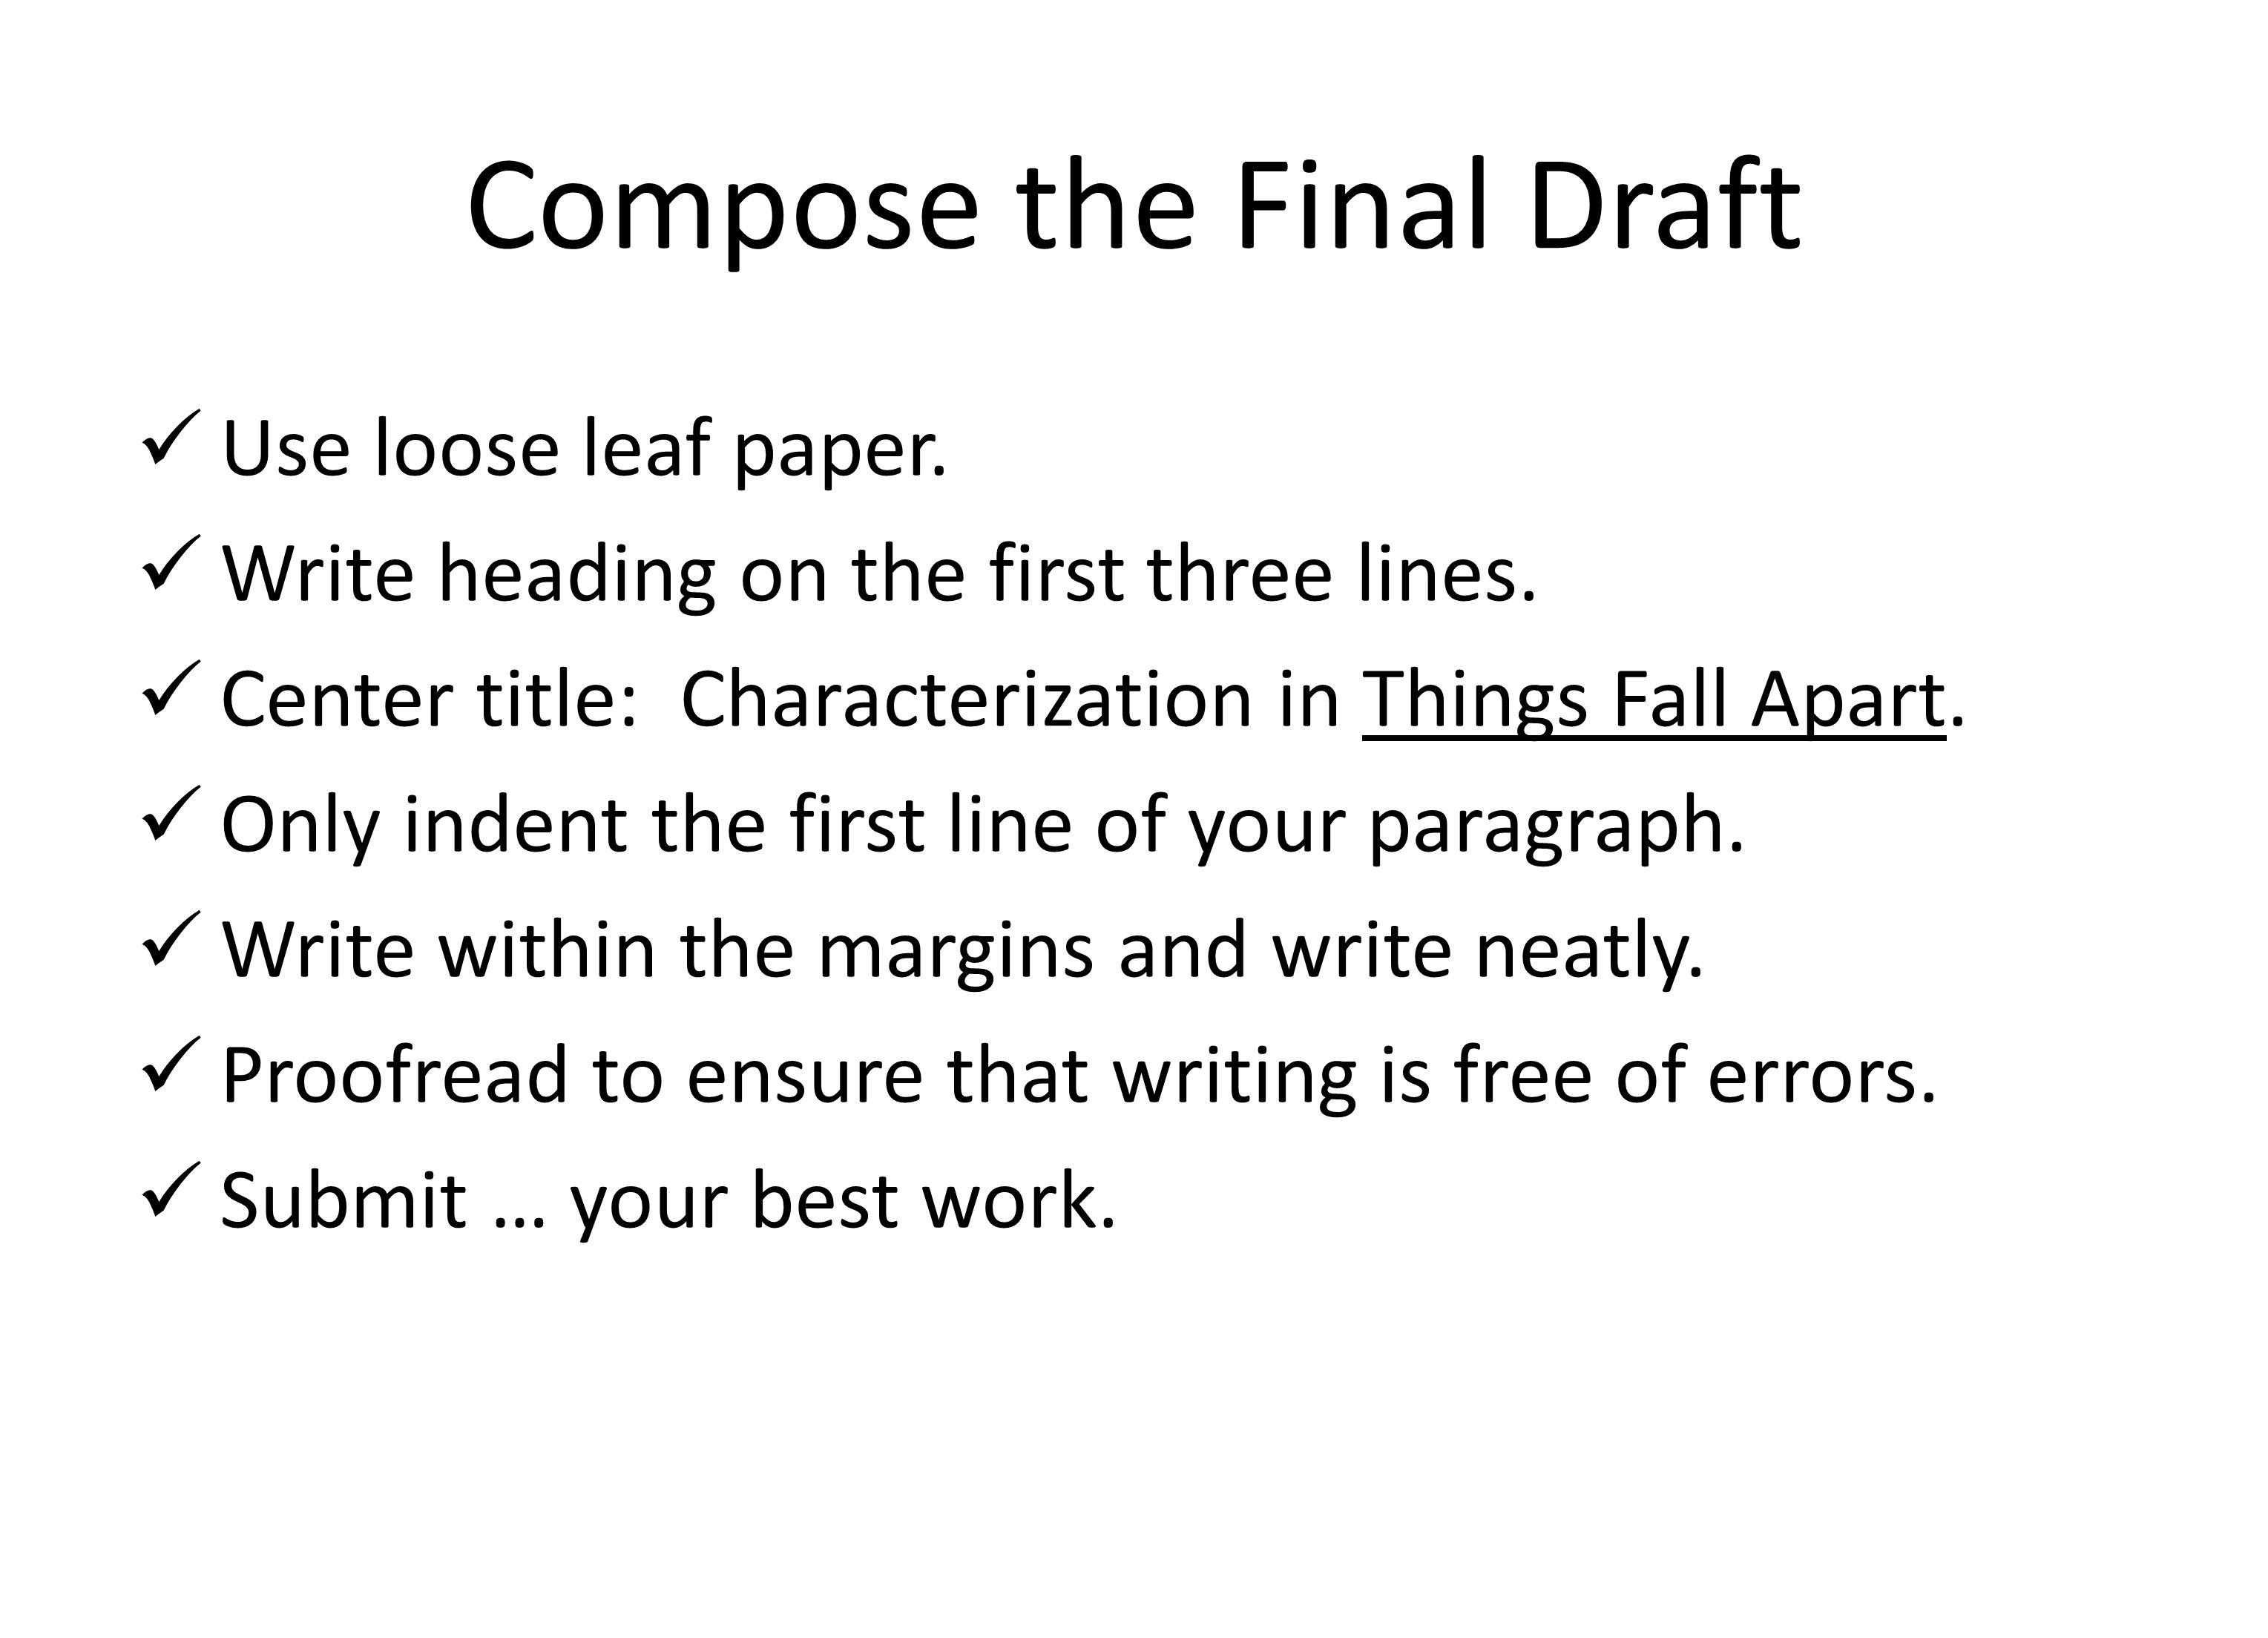 Original essay writing service with free draft